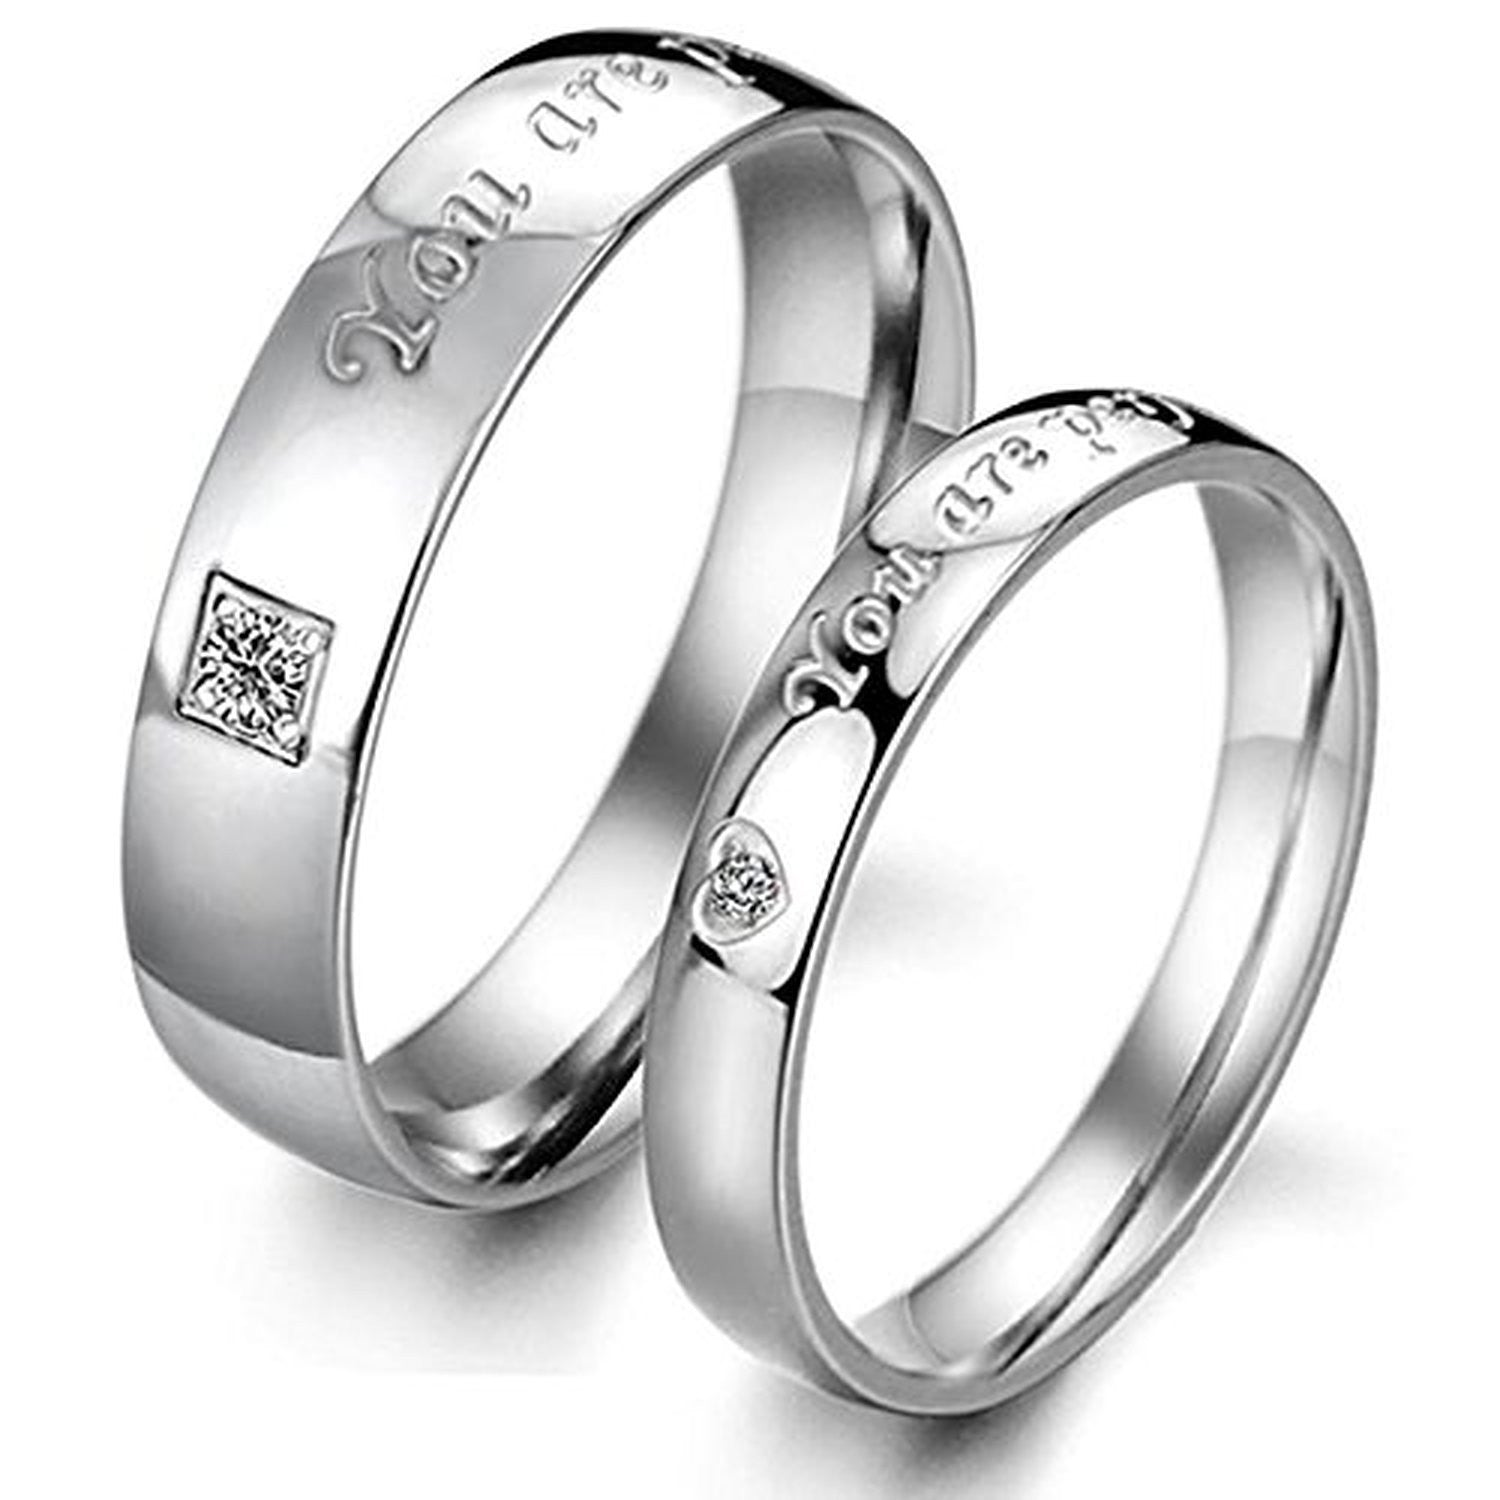 gift couple unique for stain vintage sale wedding engagement and lovers fashion hot jewelry stainless hers matching ring steel rings his queen king queenher product quot